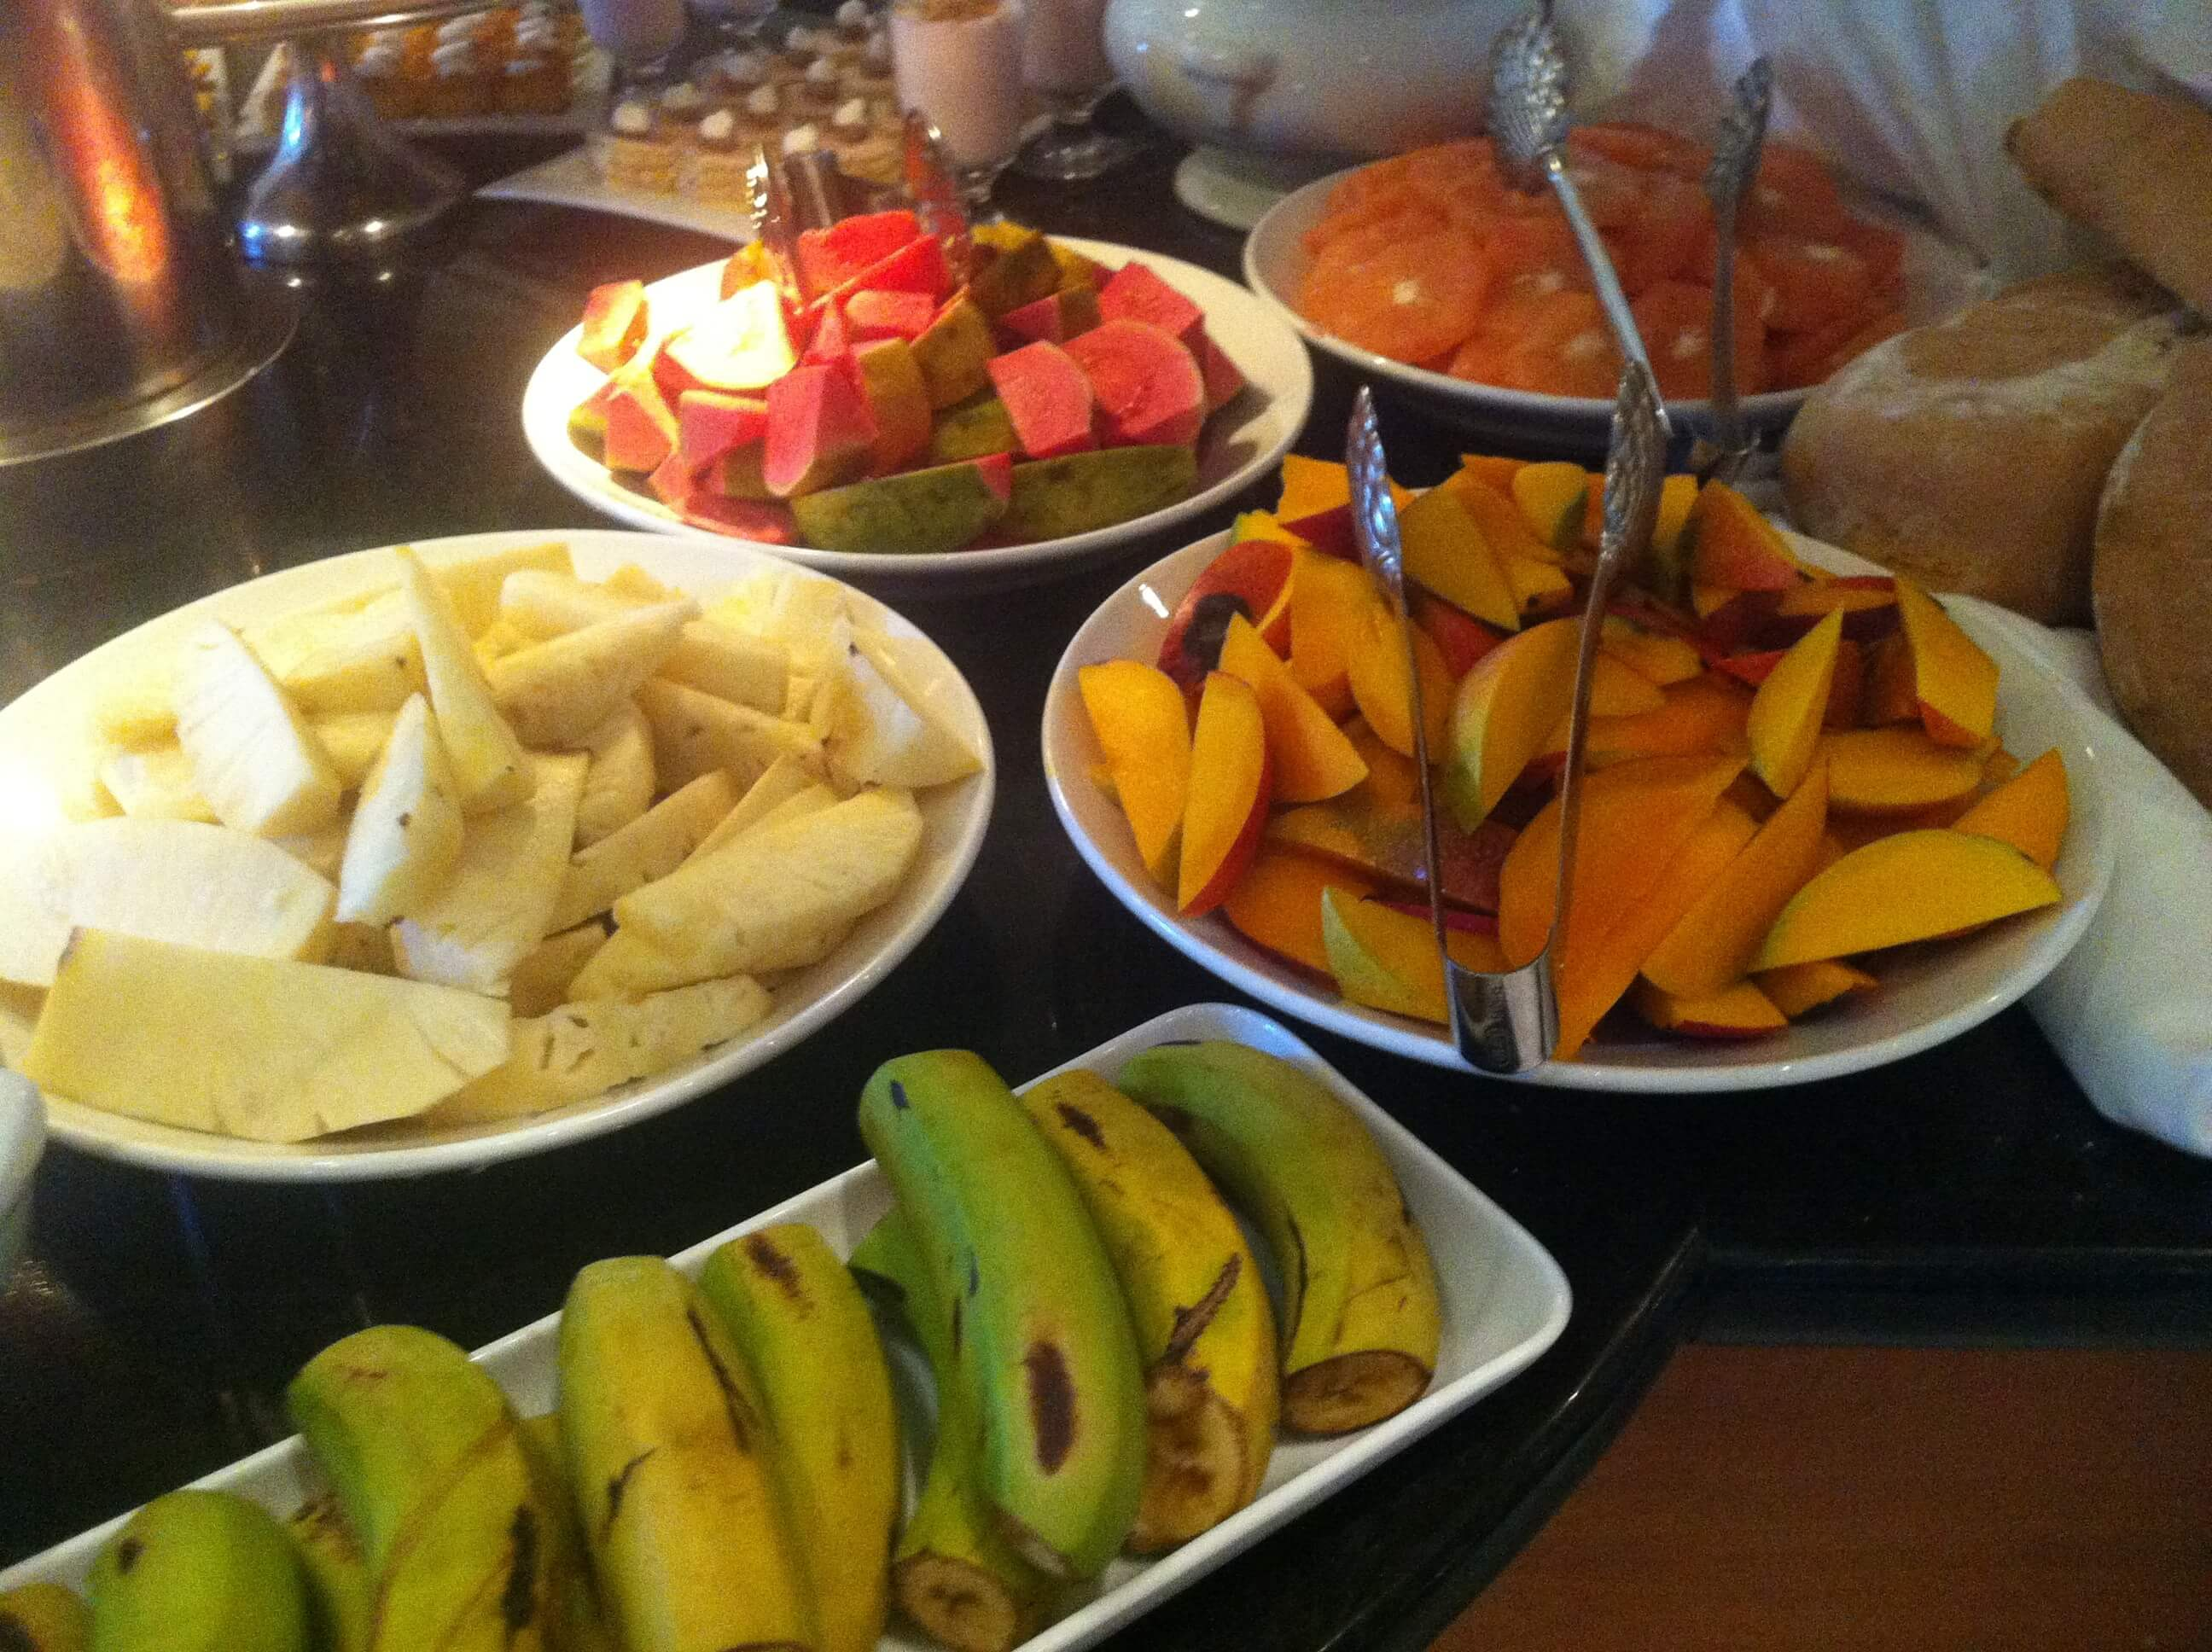 Fruity breakfast at Parque Central